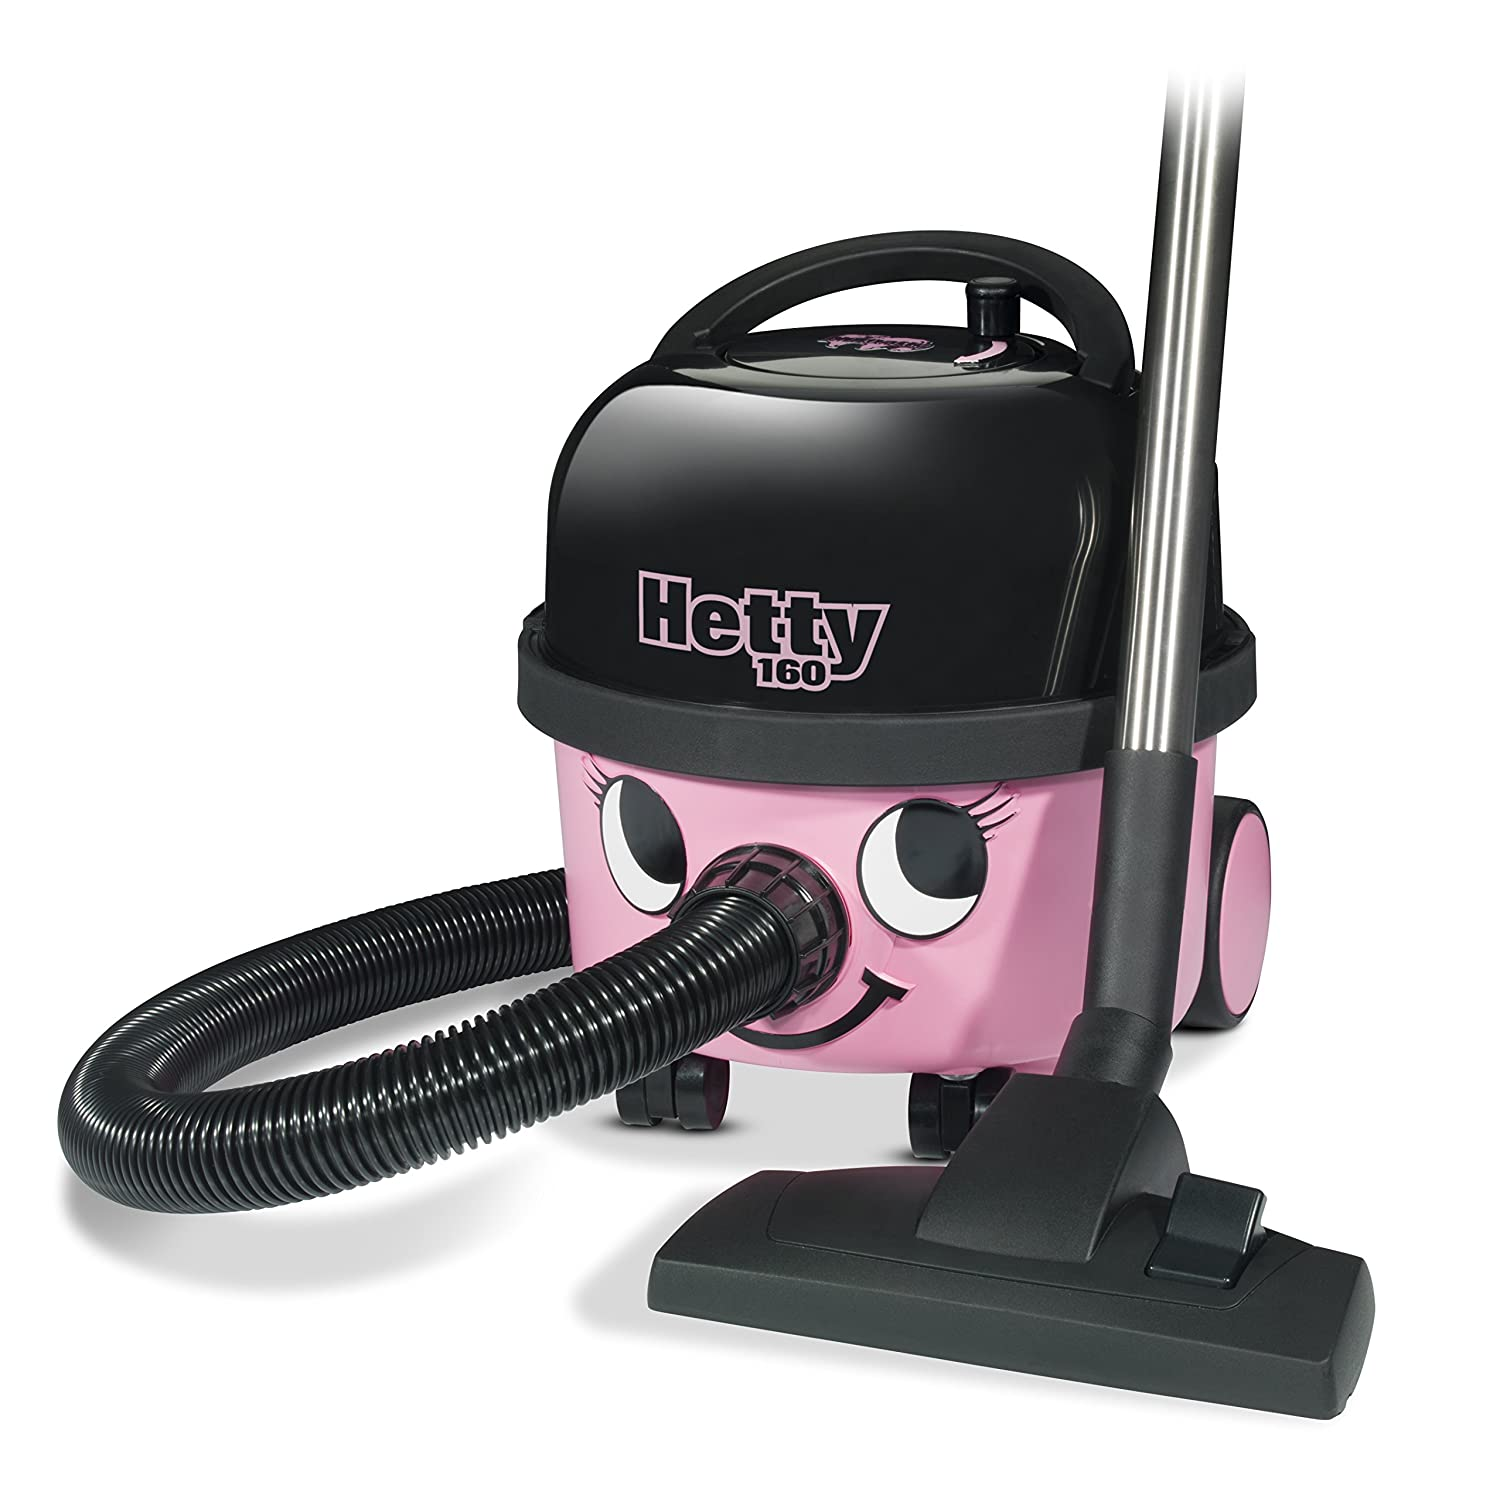 Replaceable bags, fresheners, nozzles for a vacuum cleaner - necessary accessories for good cleaning